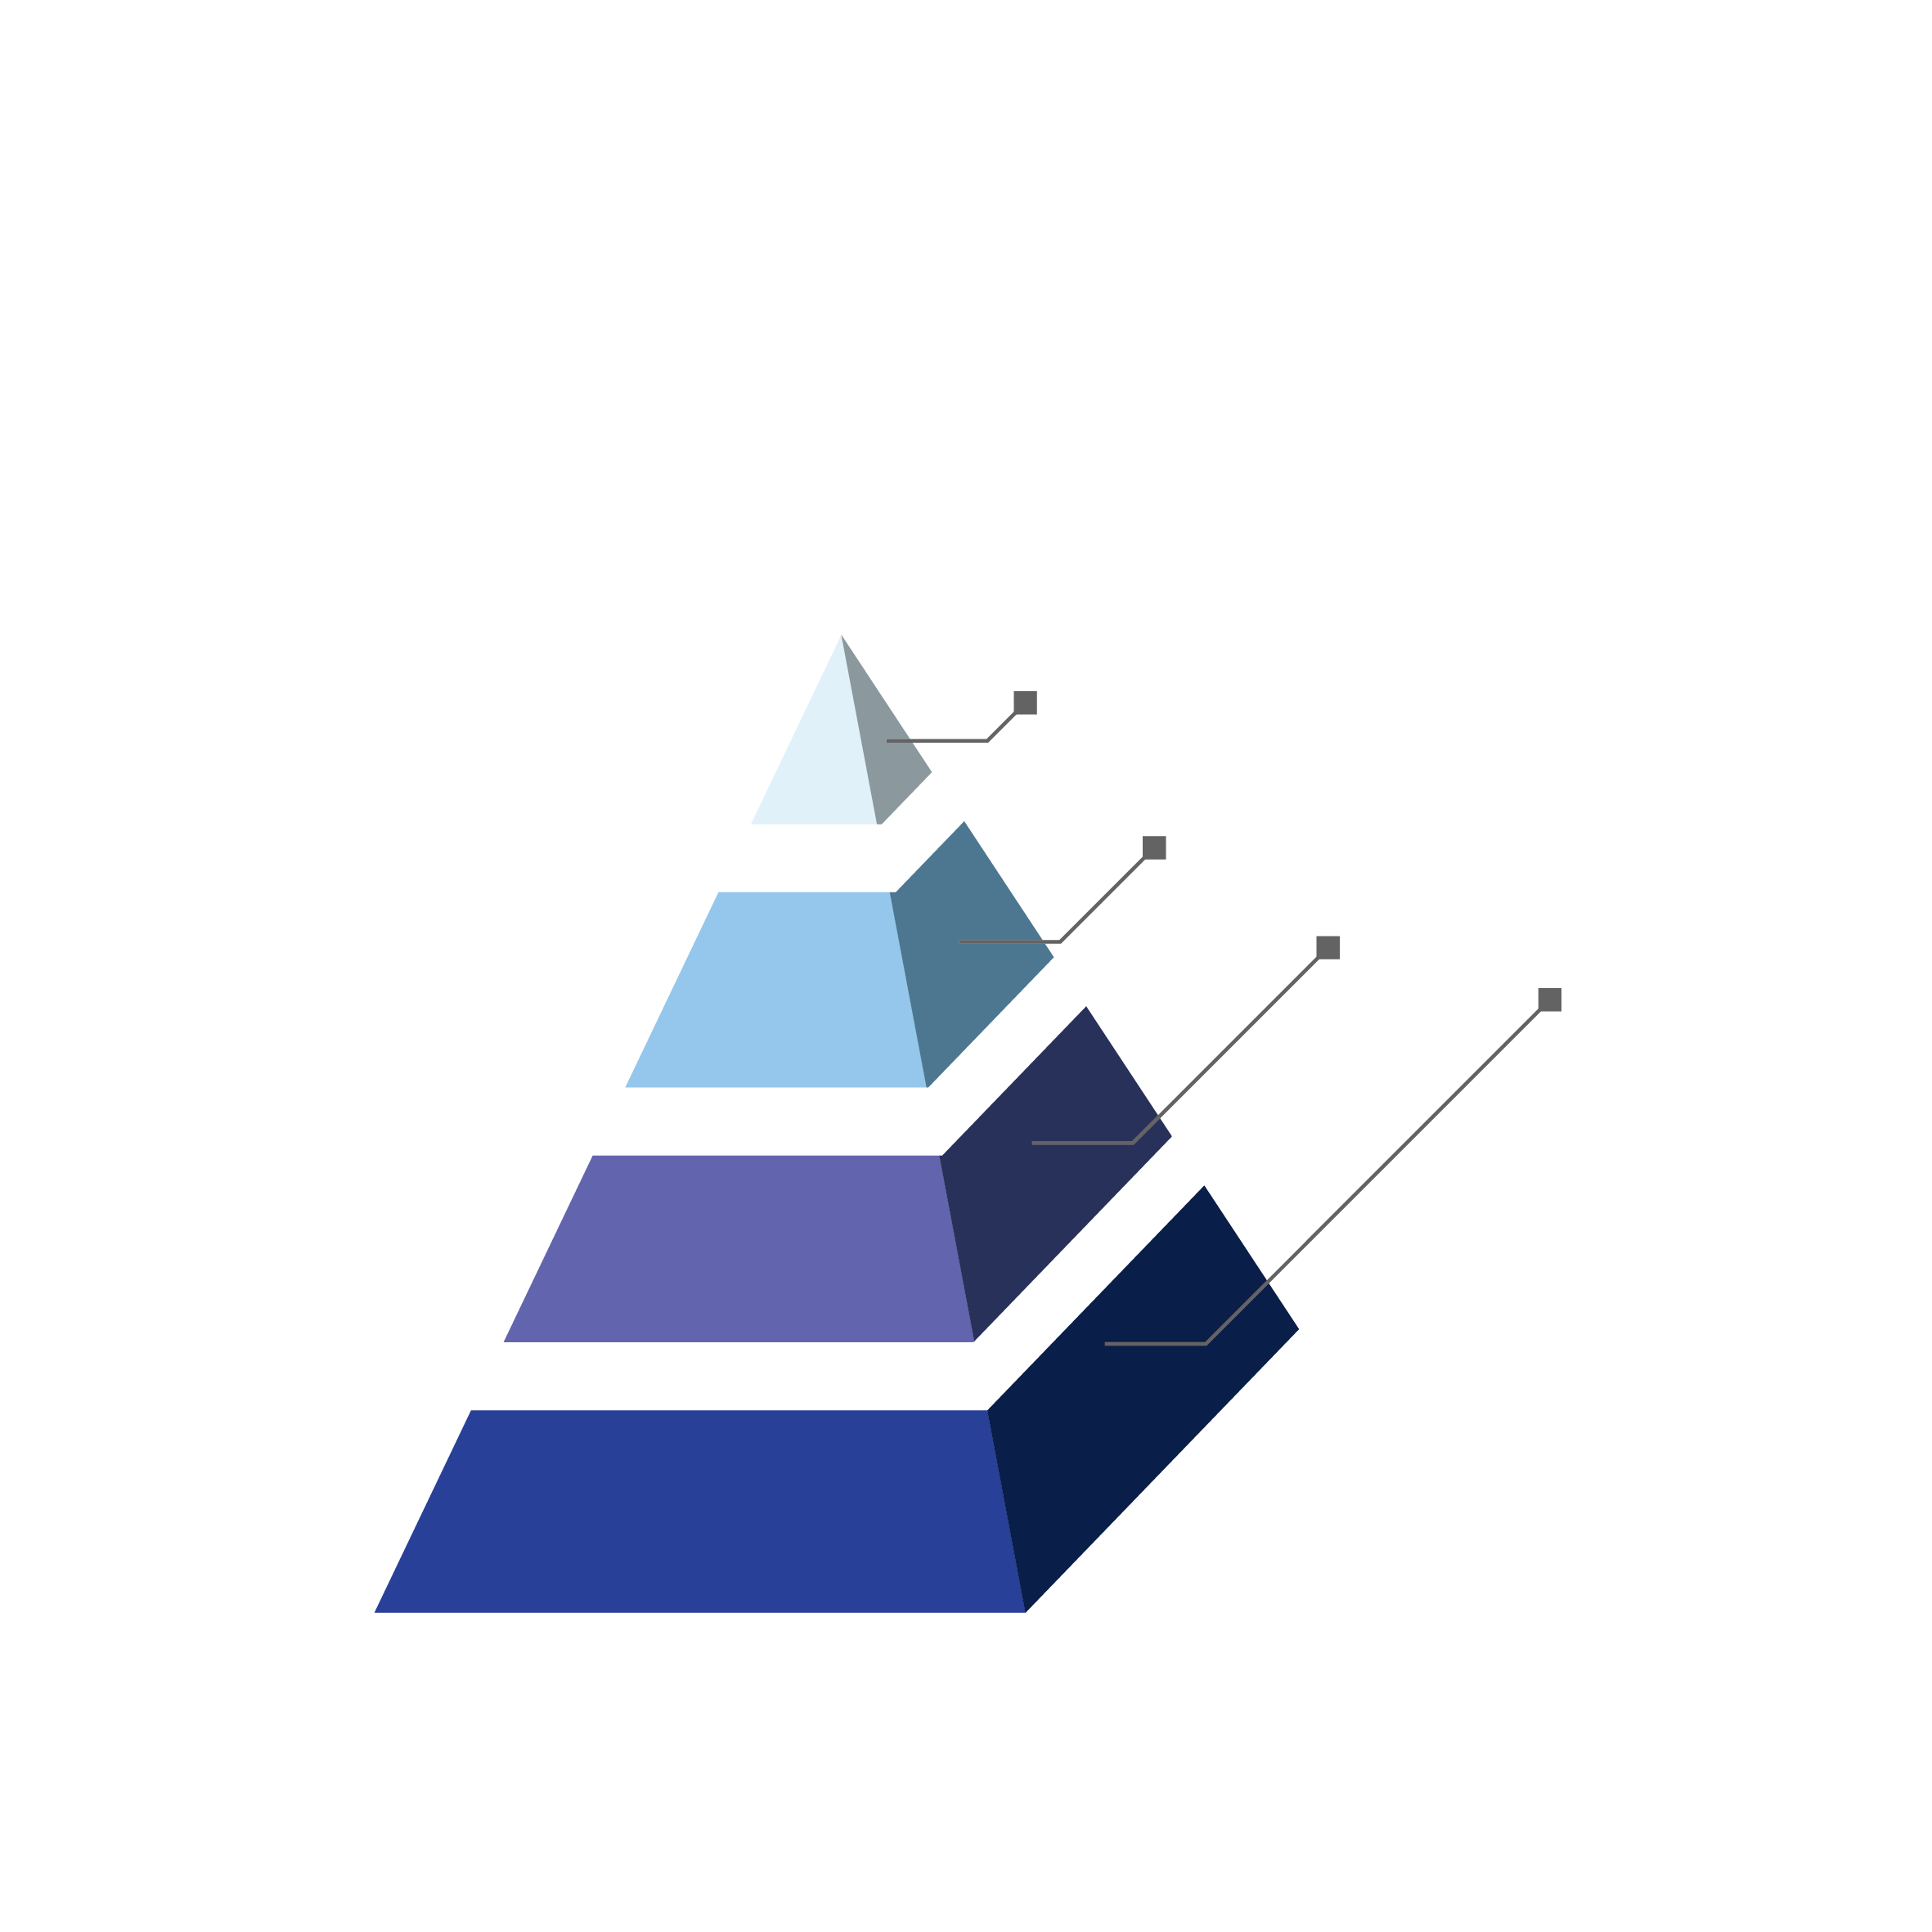 picture transparent library Adobe Illustrator Pyramid